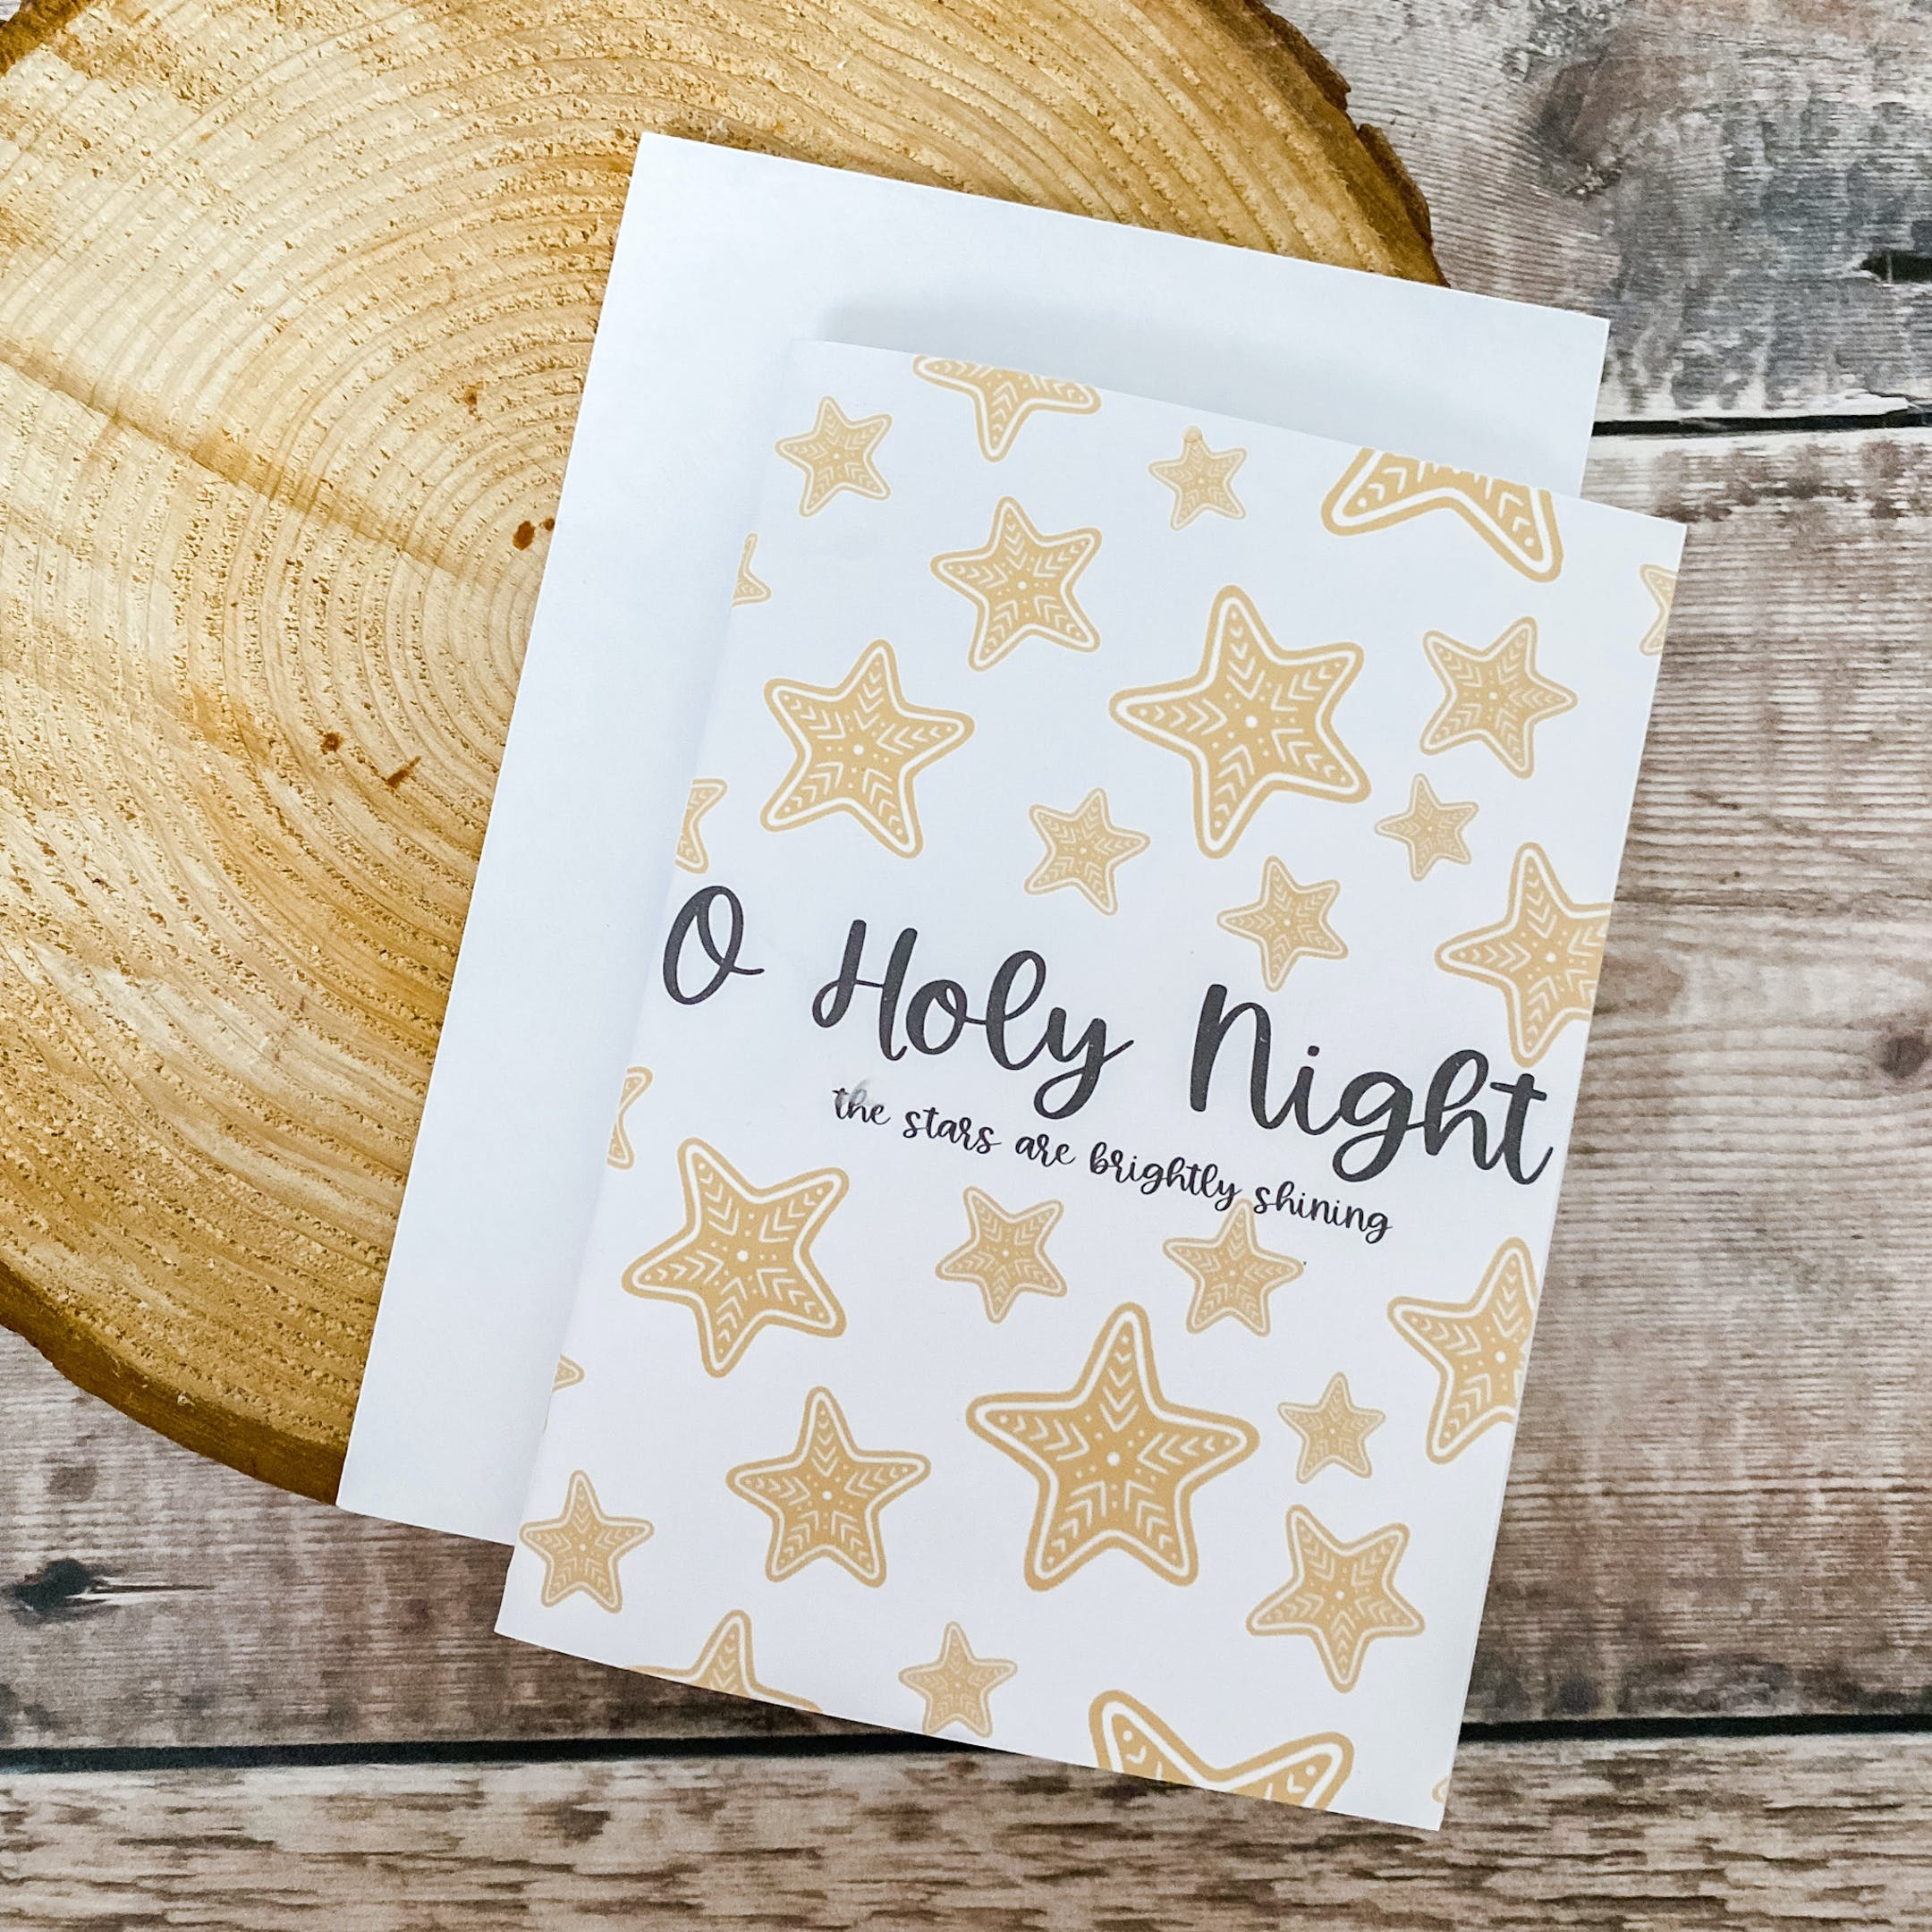 O Holy Night Christian Christmas Cards | Full of Grace Studio | Cheerfully Given